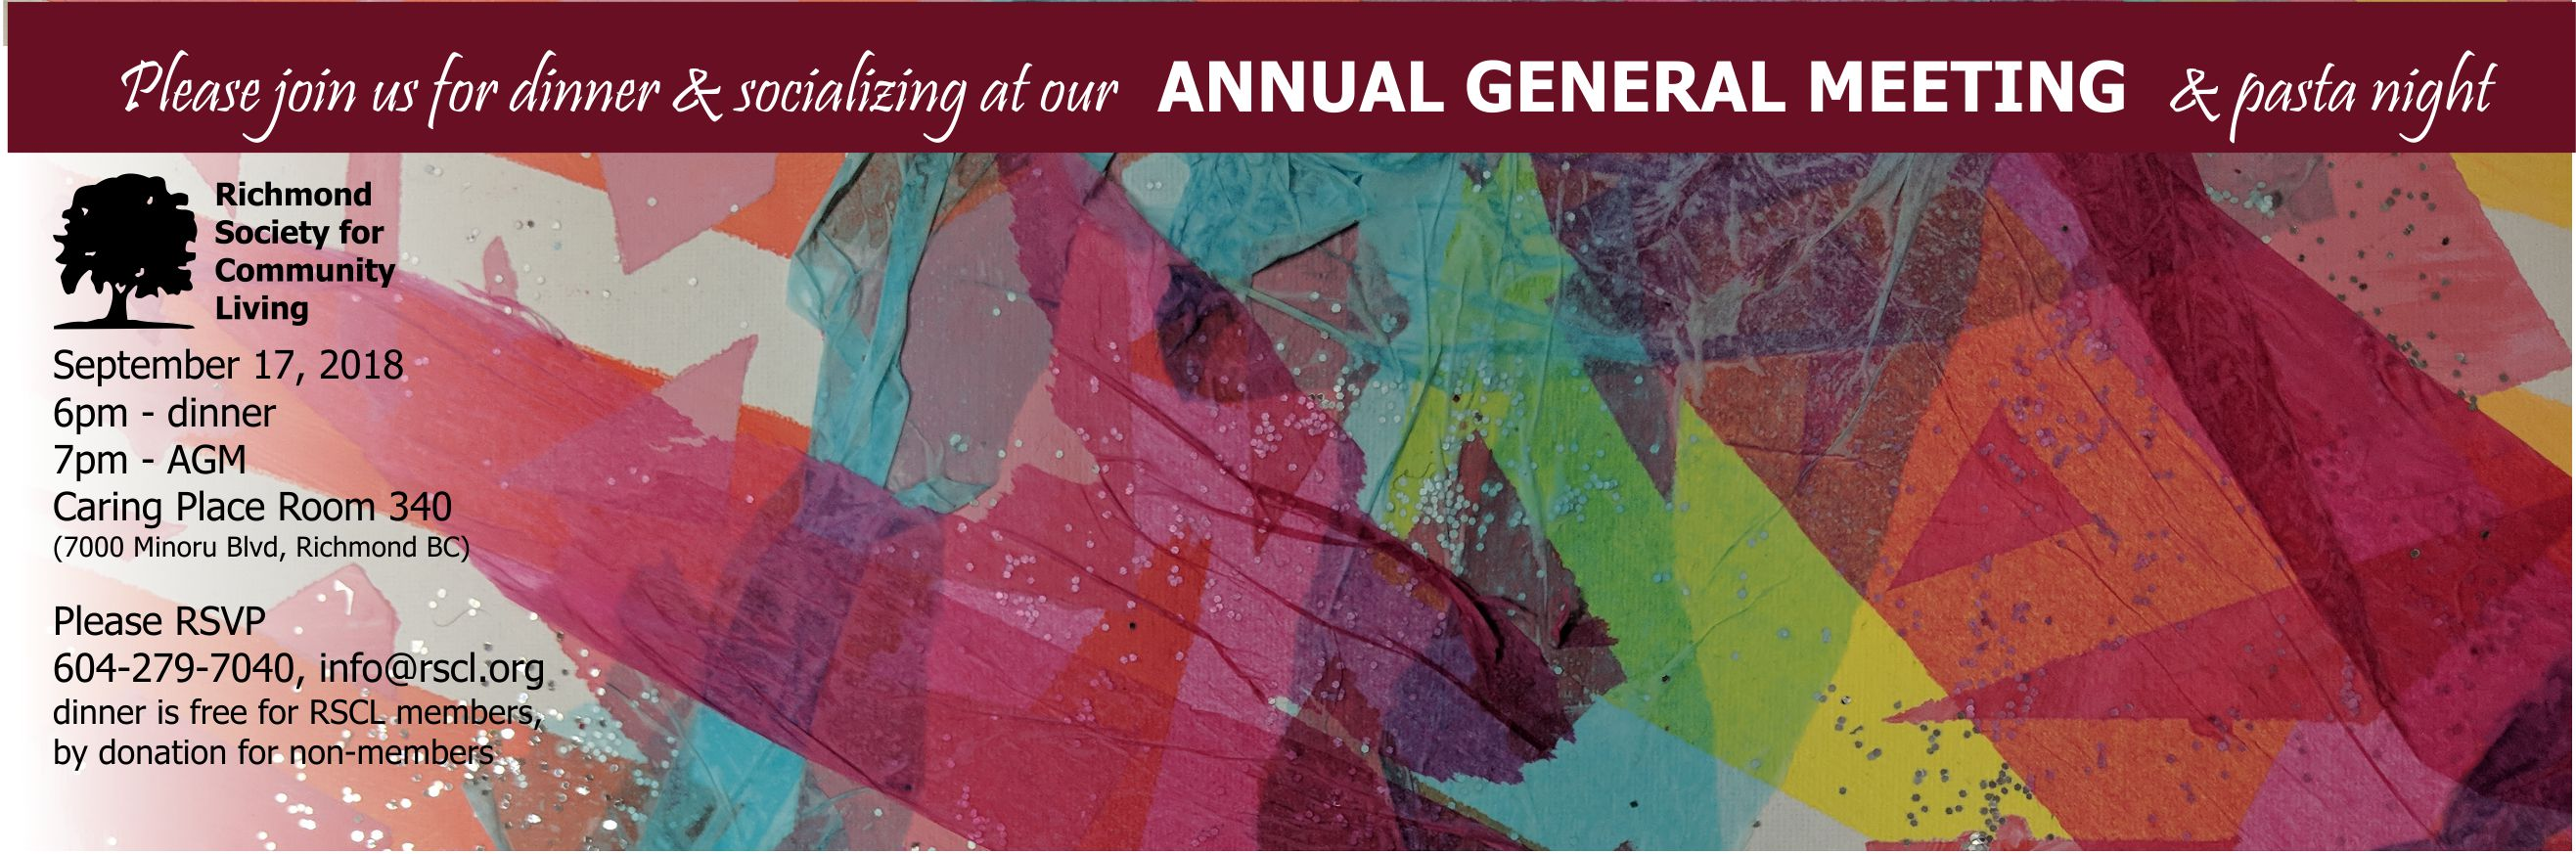 Annual General Meeting 2018richmond Society For Community